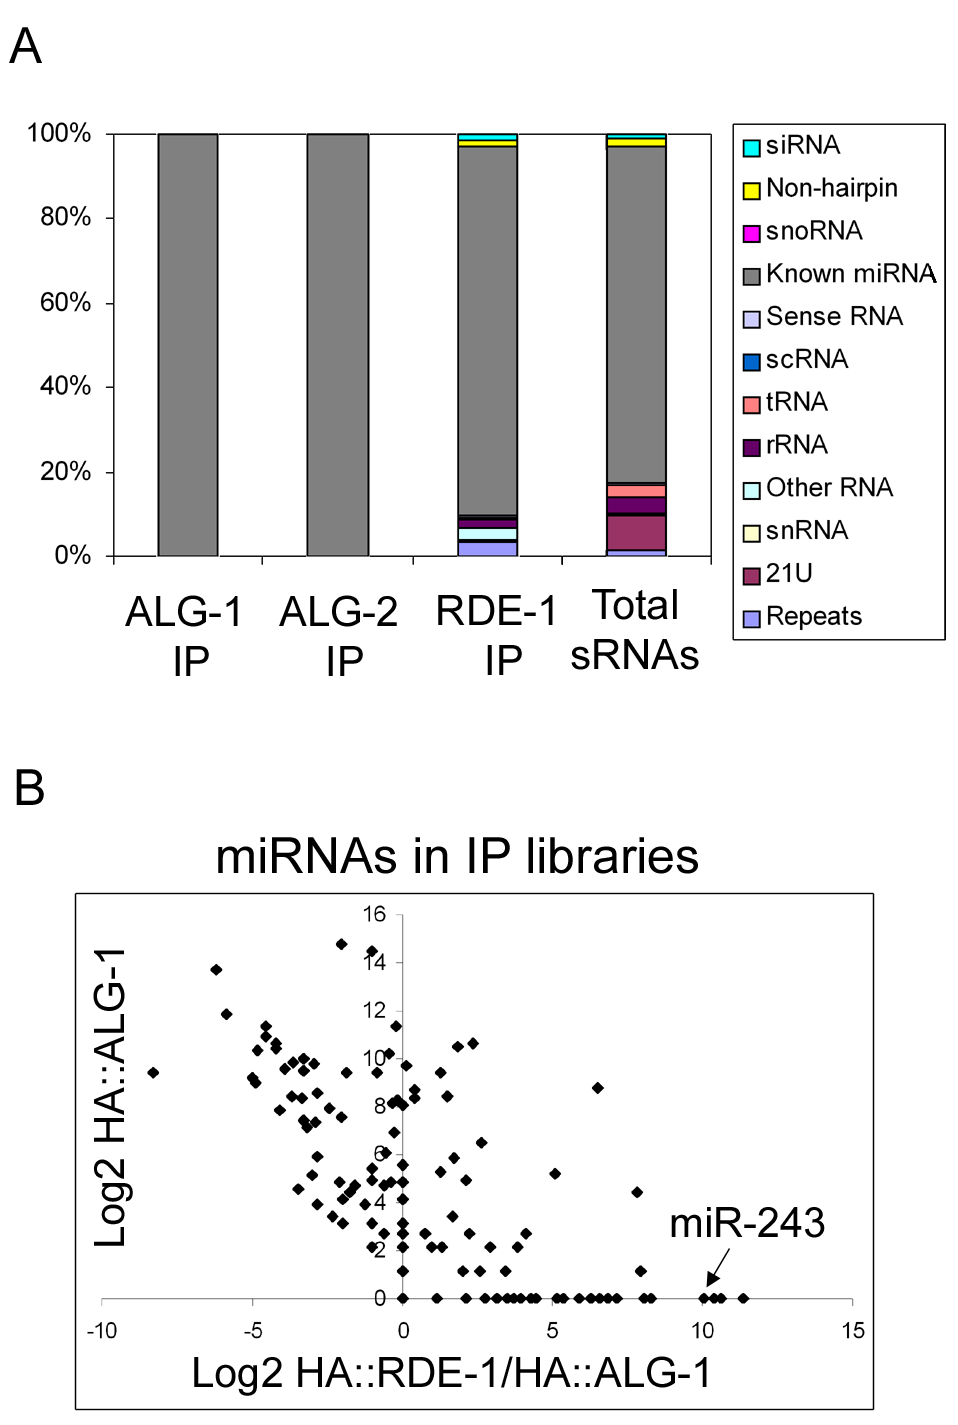 Overview of the small RNAs found in HA::ALG-1, HA::ALG-2, and HA::RDE-1 immunoprecipitate libraries.